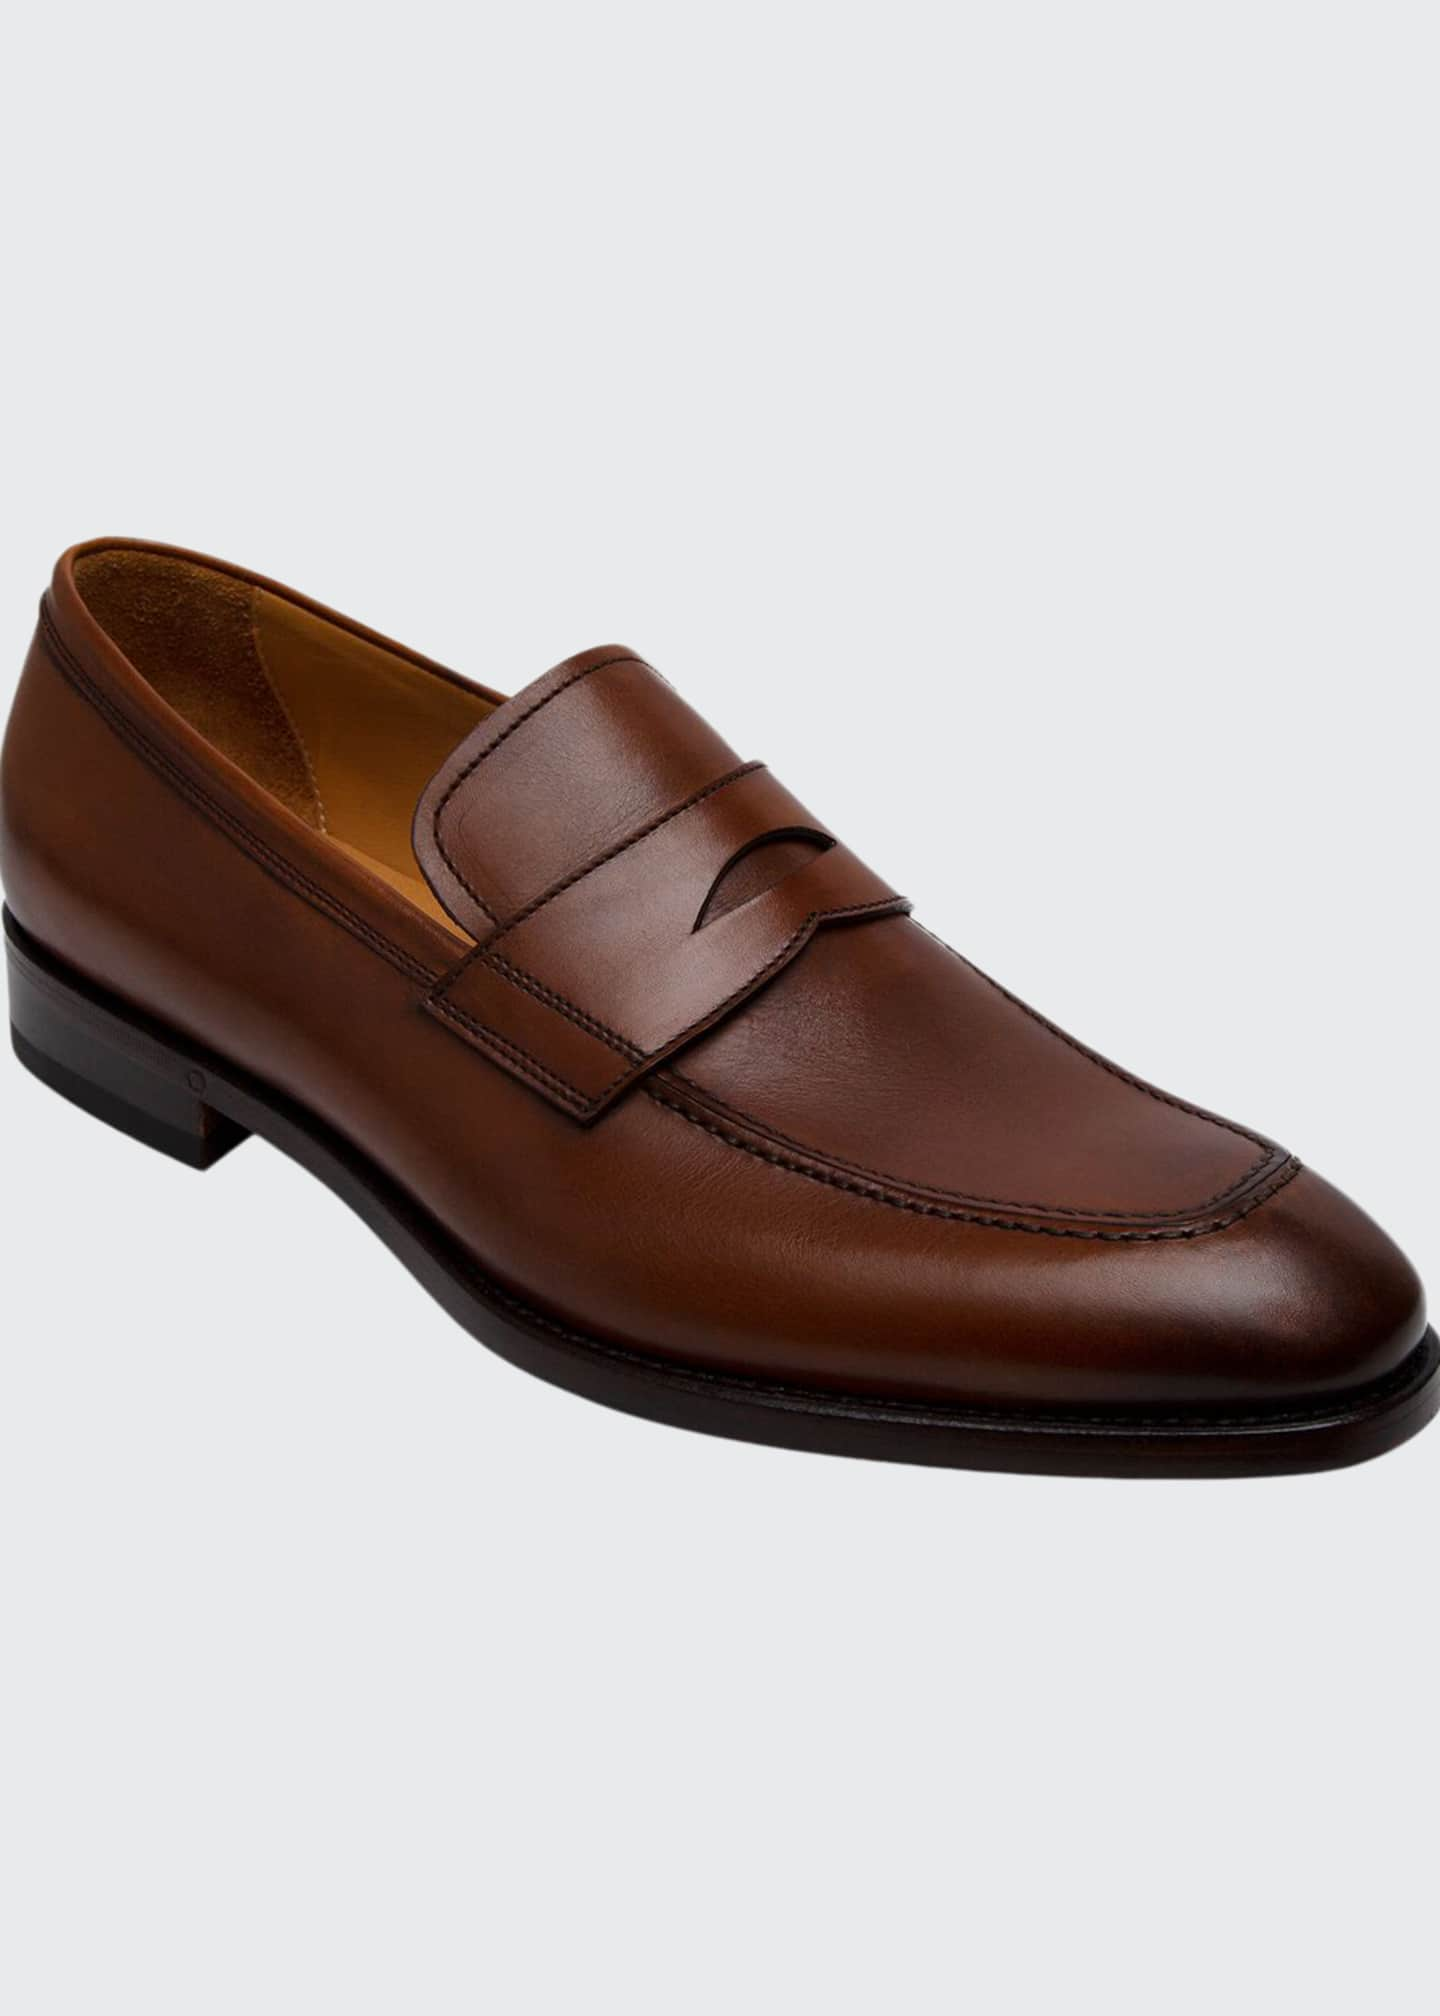 Image 1 of 2: Men's Lane Leather Penny Loafers